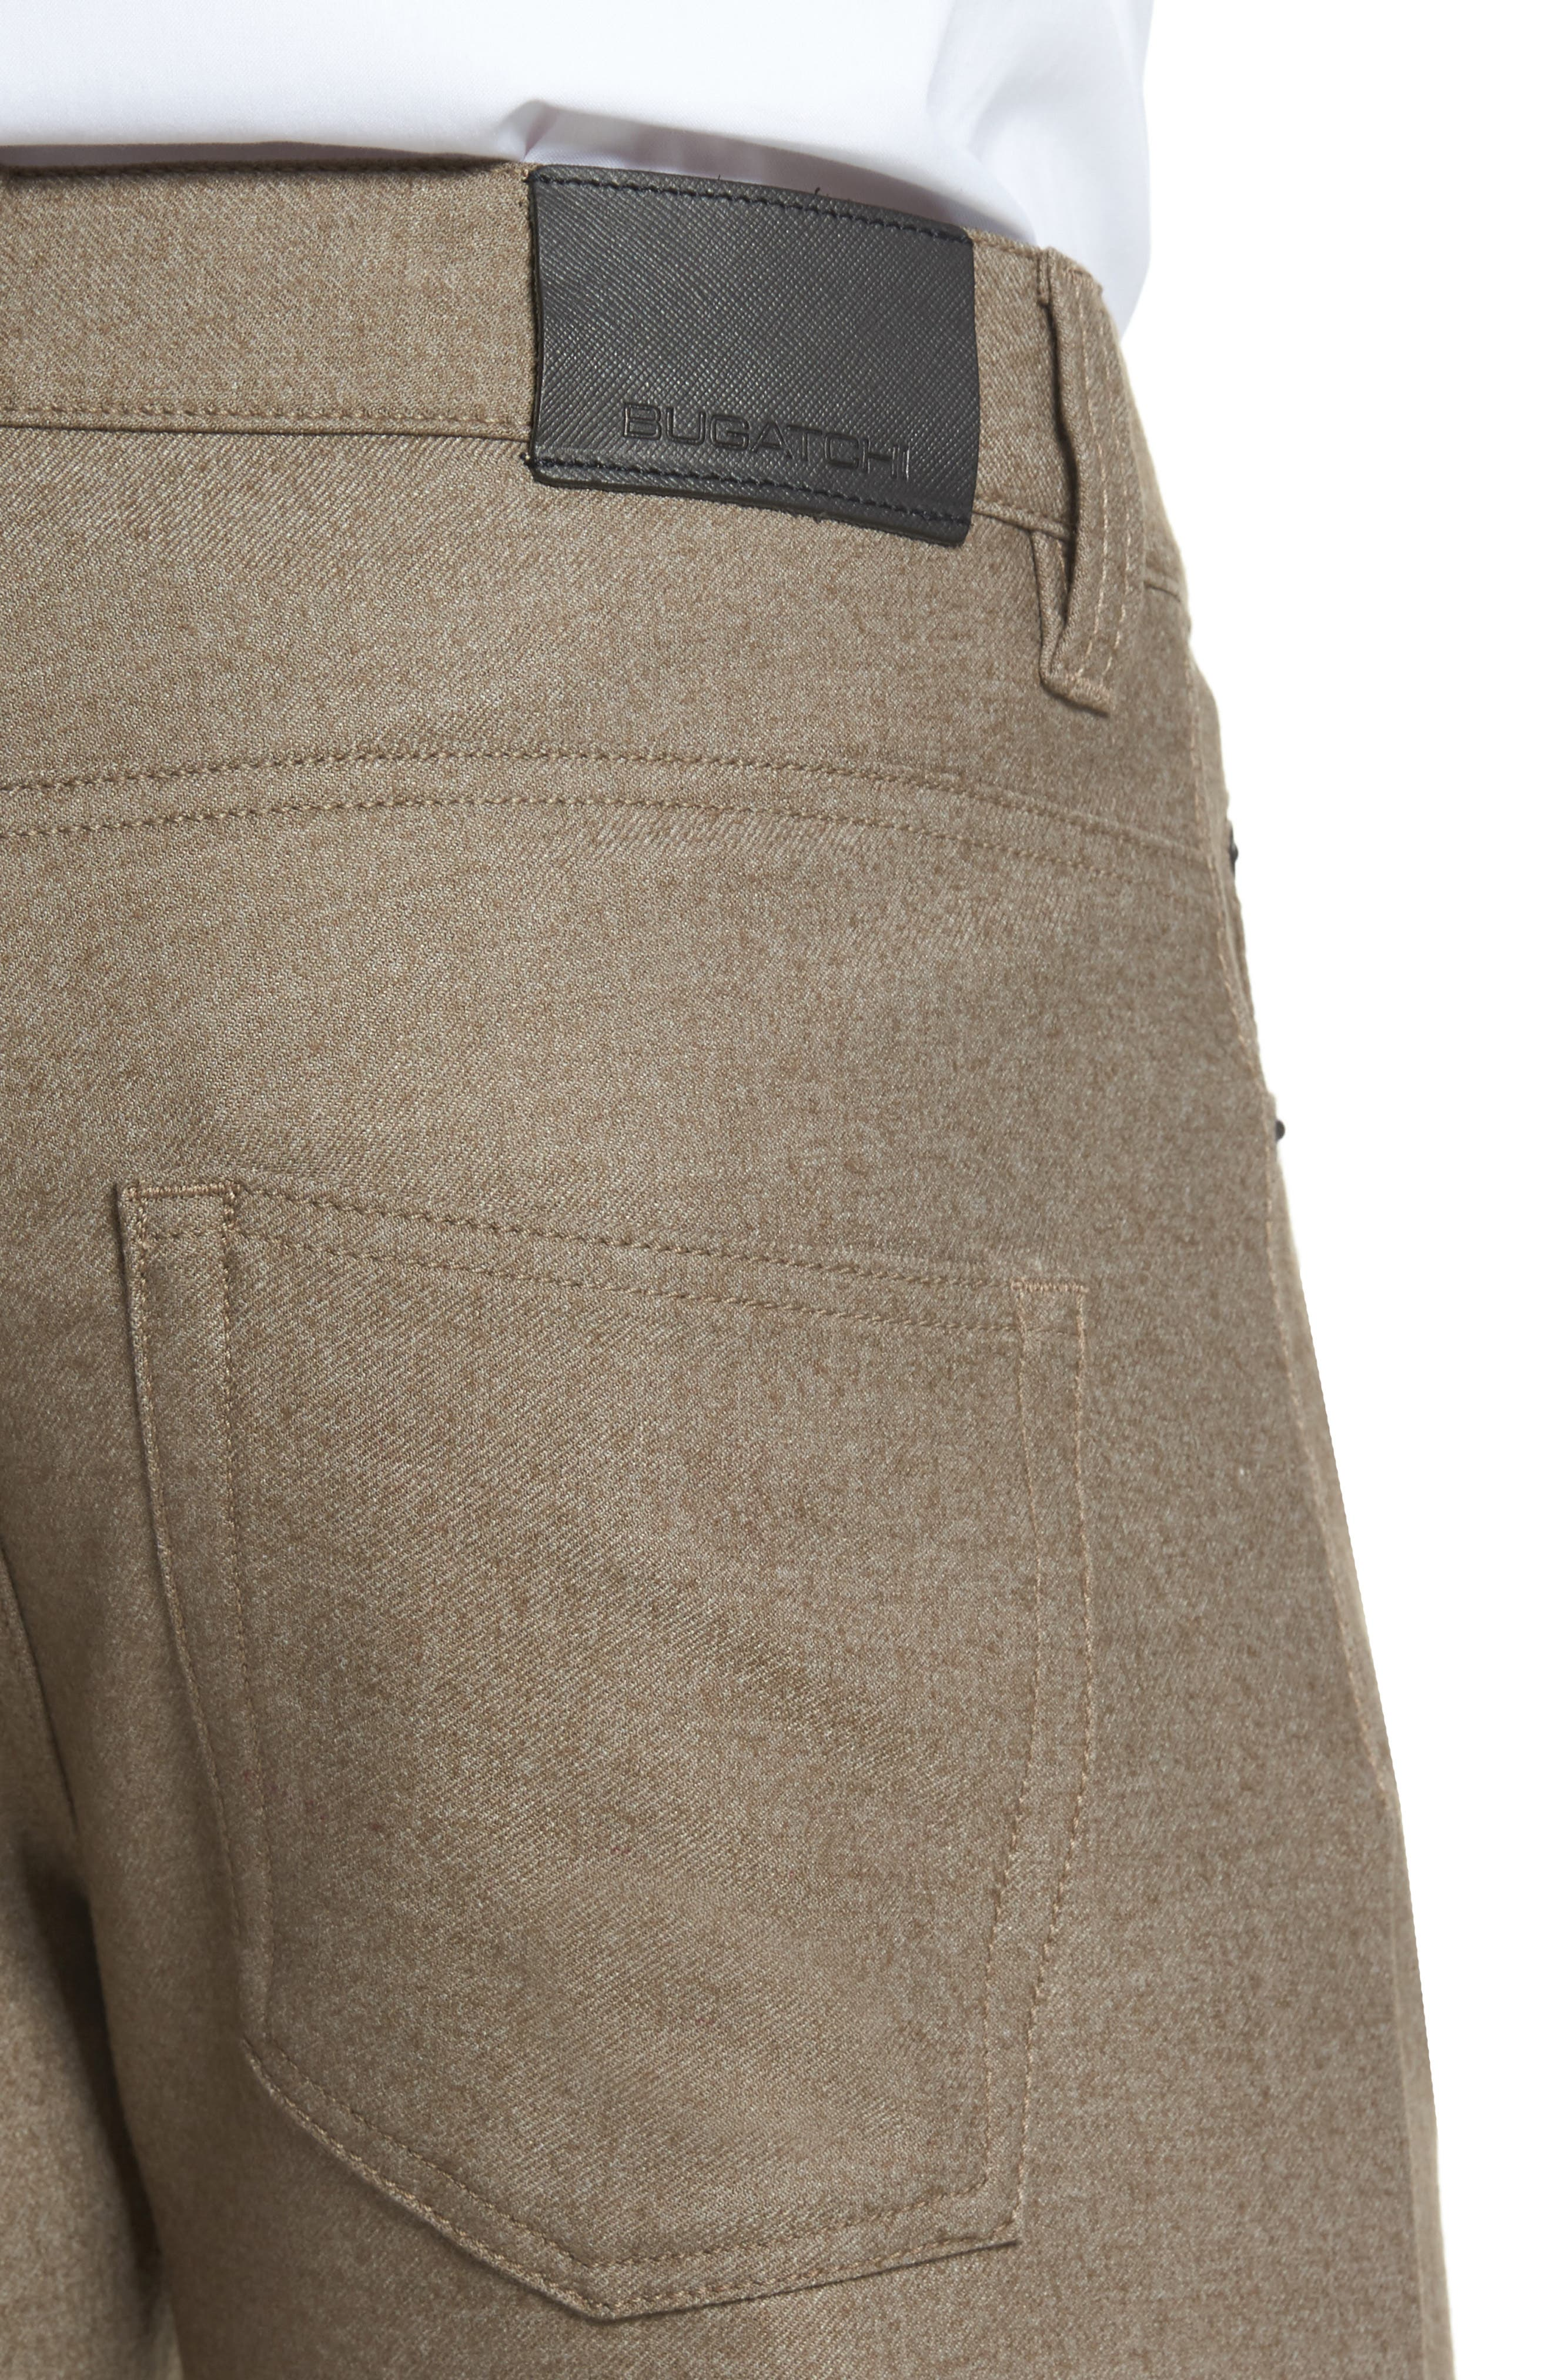 Wool Blend Pants,                             Alternate thumbnail 4, color,                             208